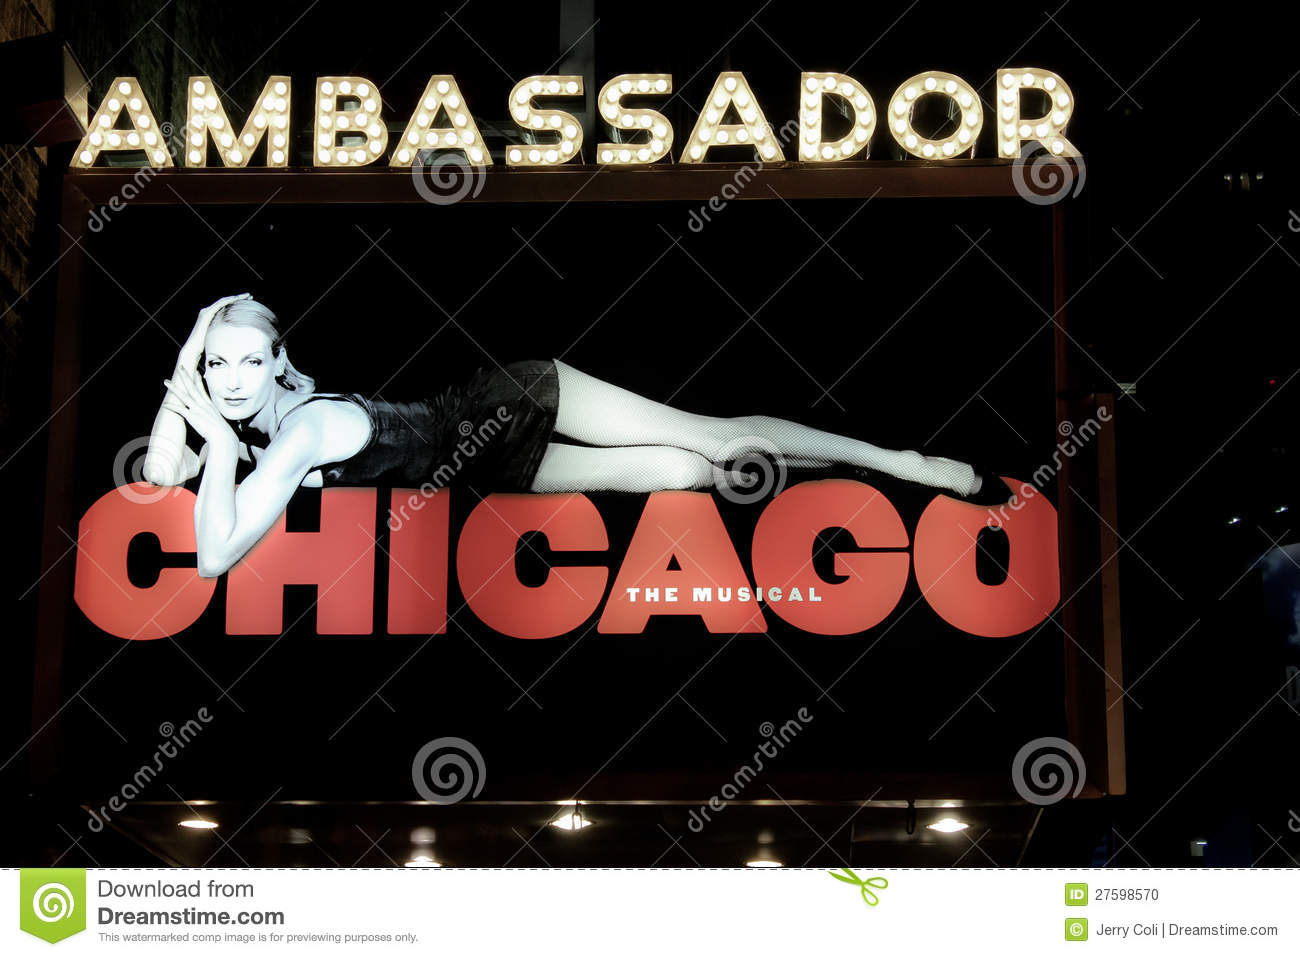 Ambassador Theater home of Chicago